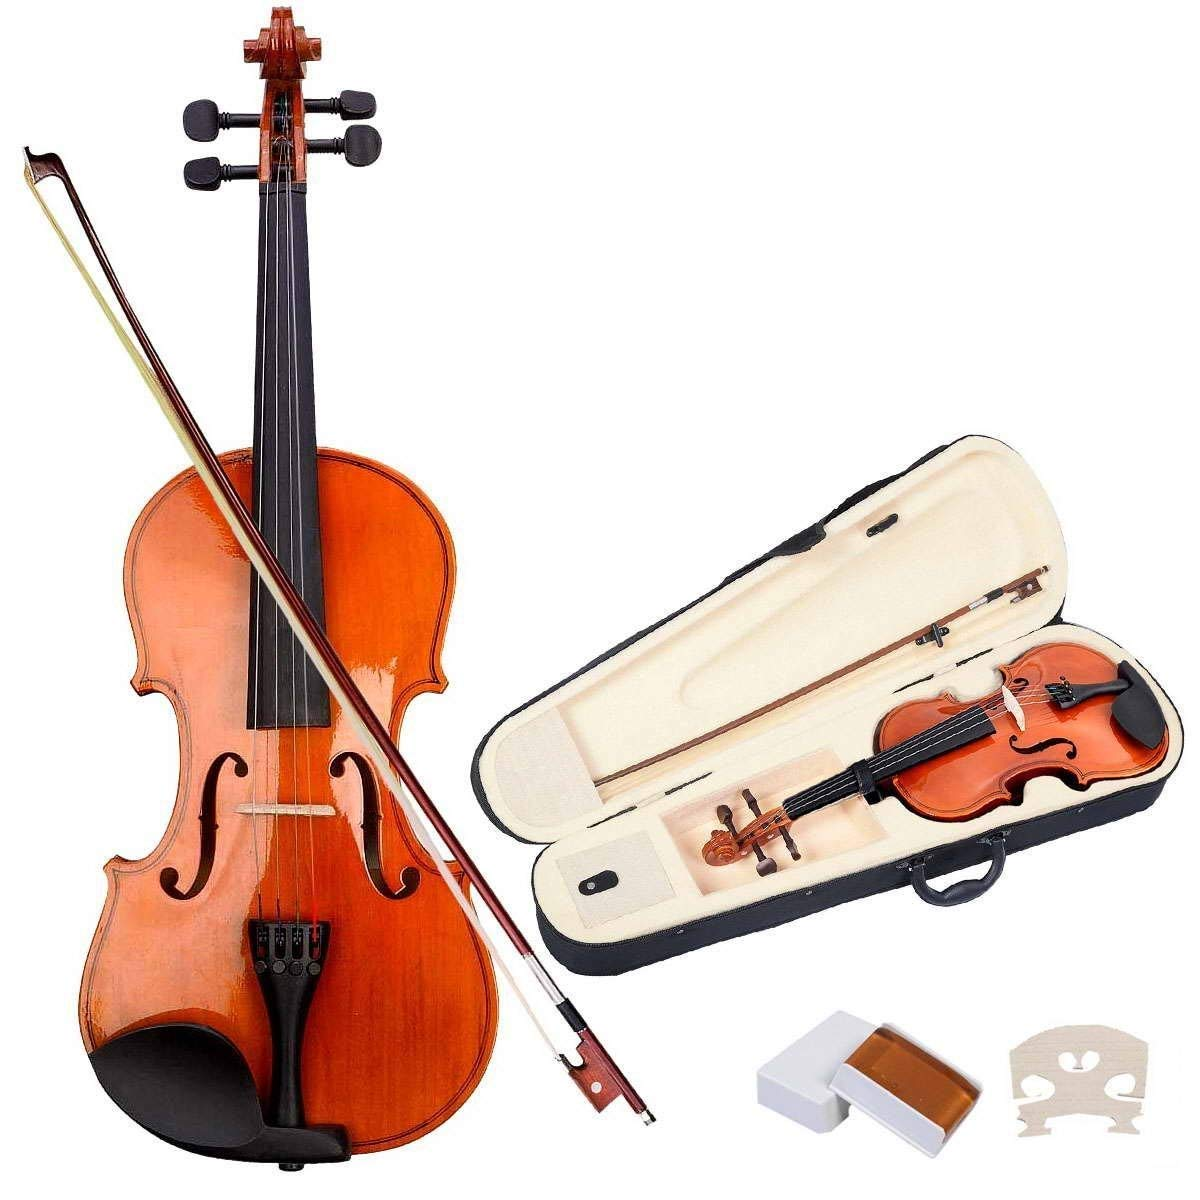 Goplus 4/4 Full Size Acoustic Violin Durable Natural Solid Wood Fiddle for Beginners and Students w/Case, Bow and Rosin (Black) Superbuy